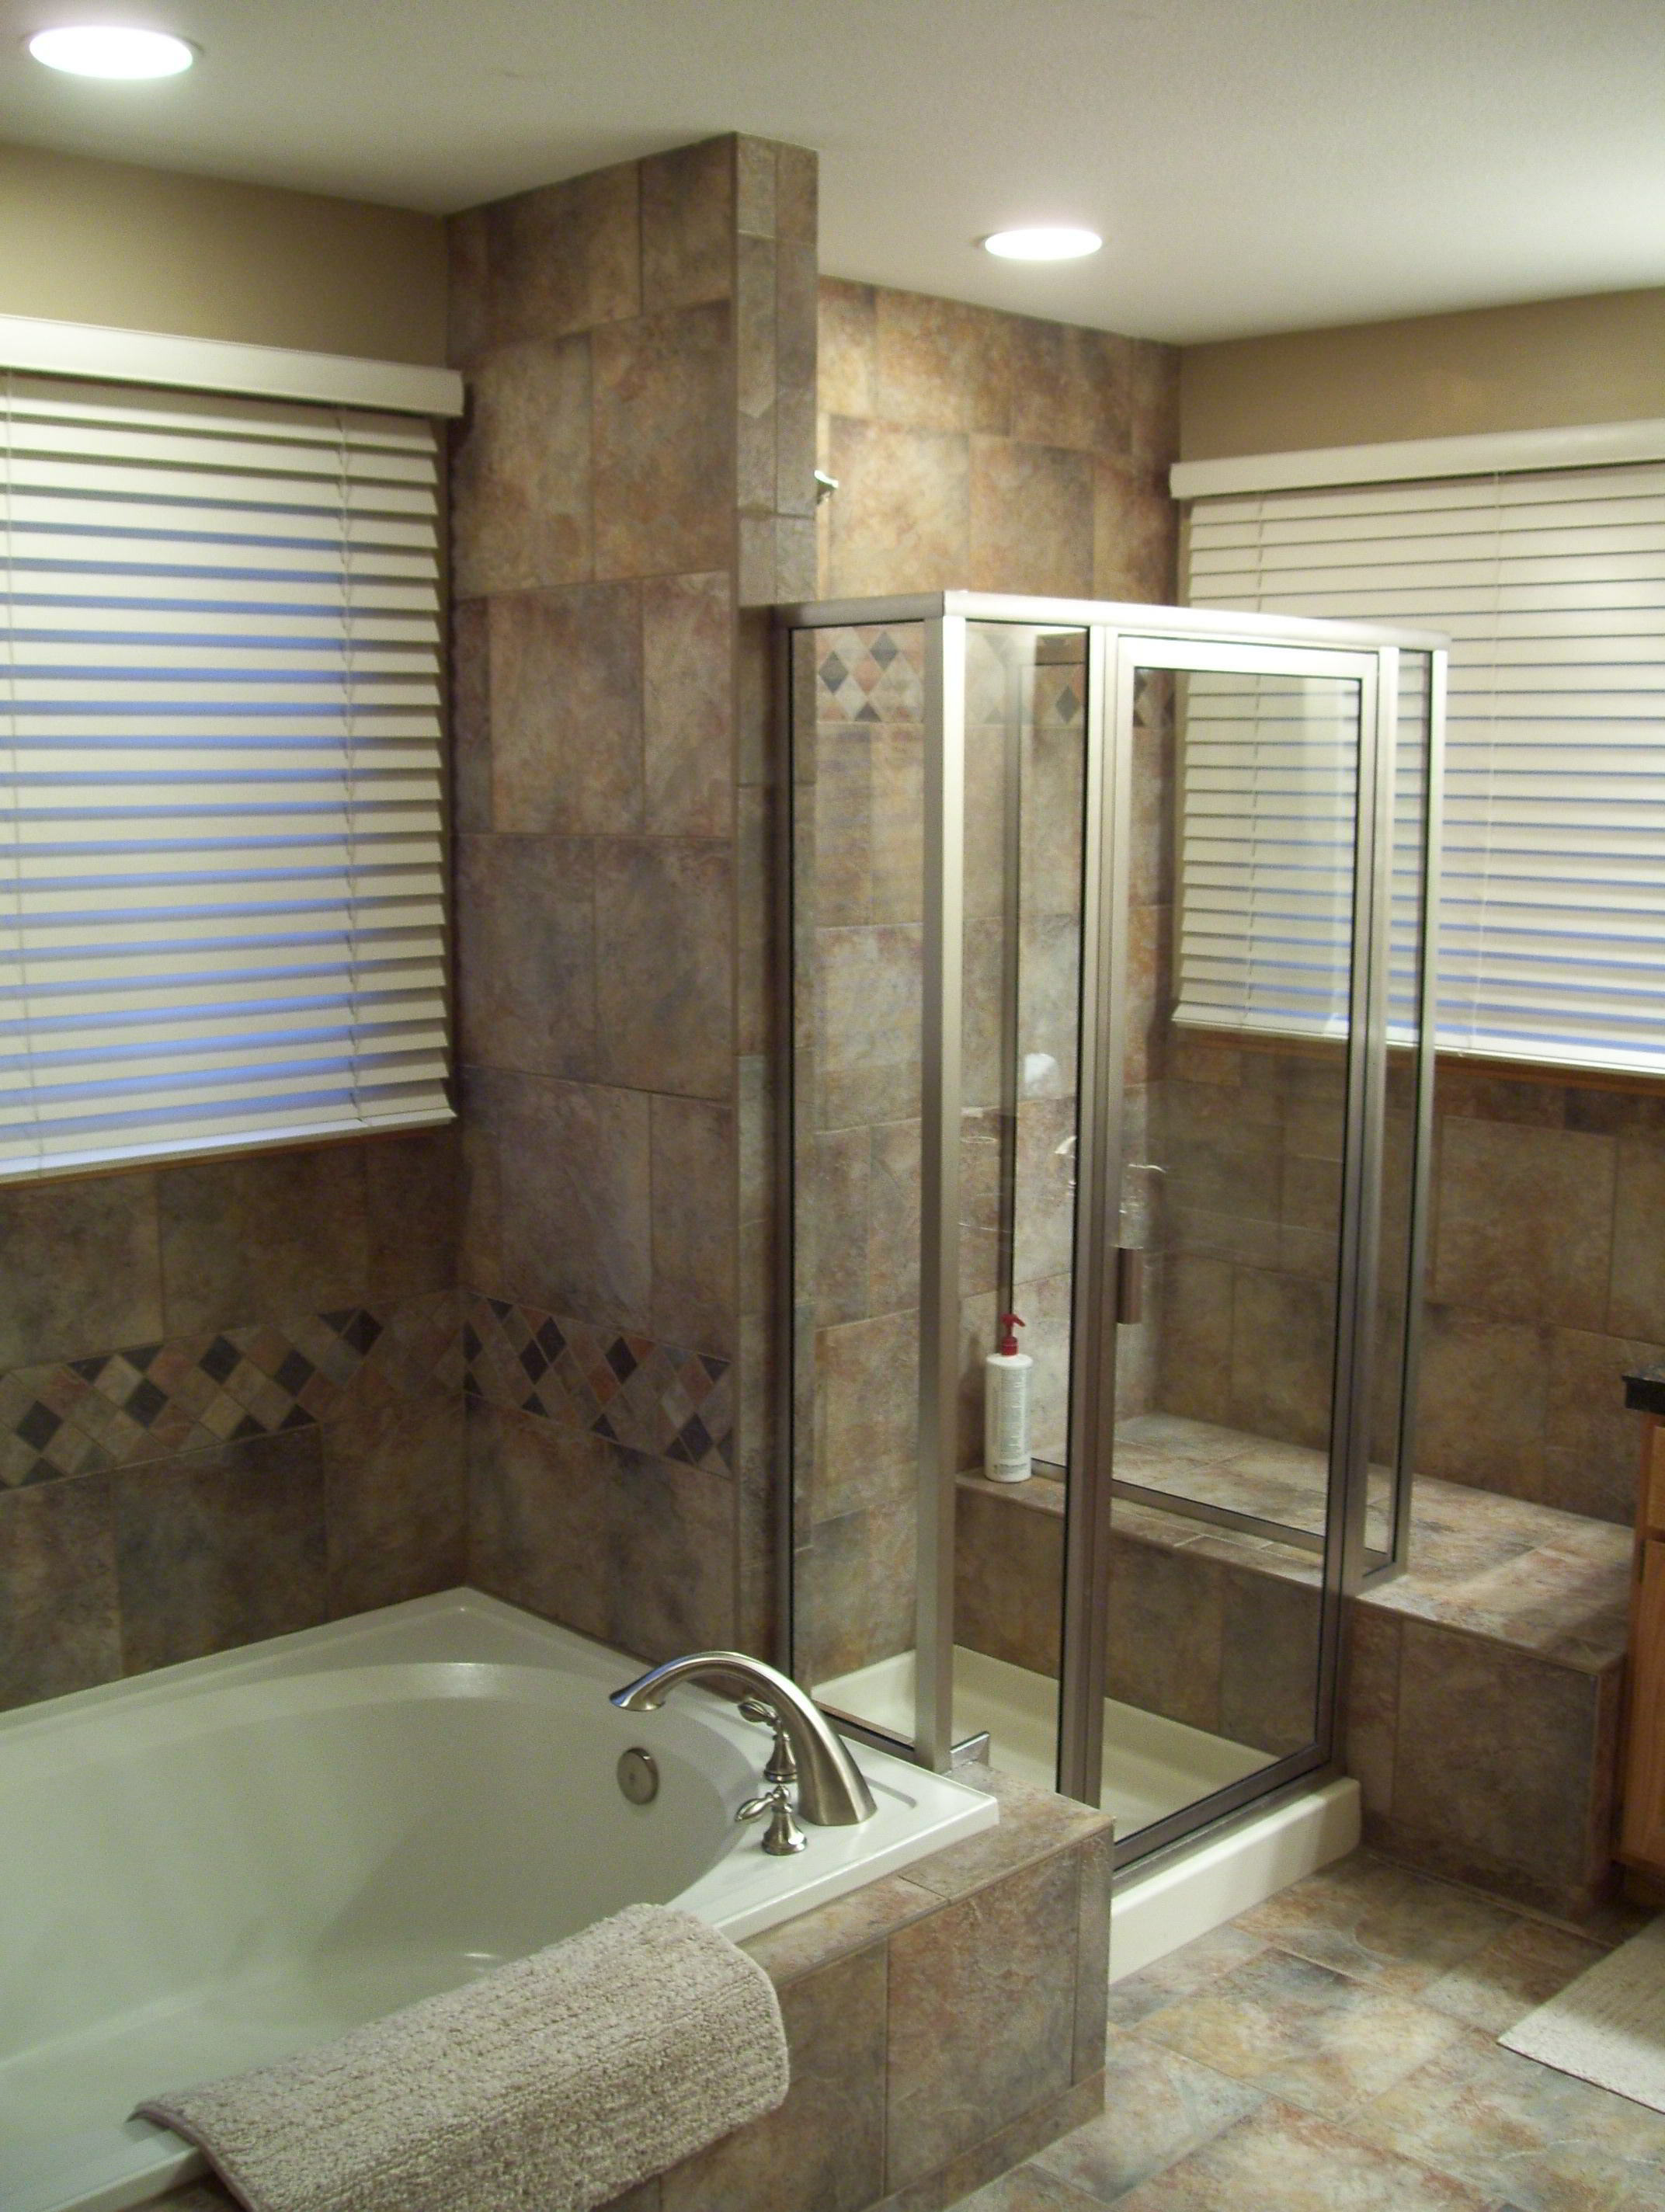 Remodeling kitchen bath basement deck littleton co for Bathroom home improvement